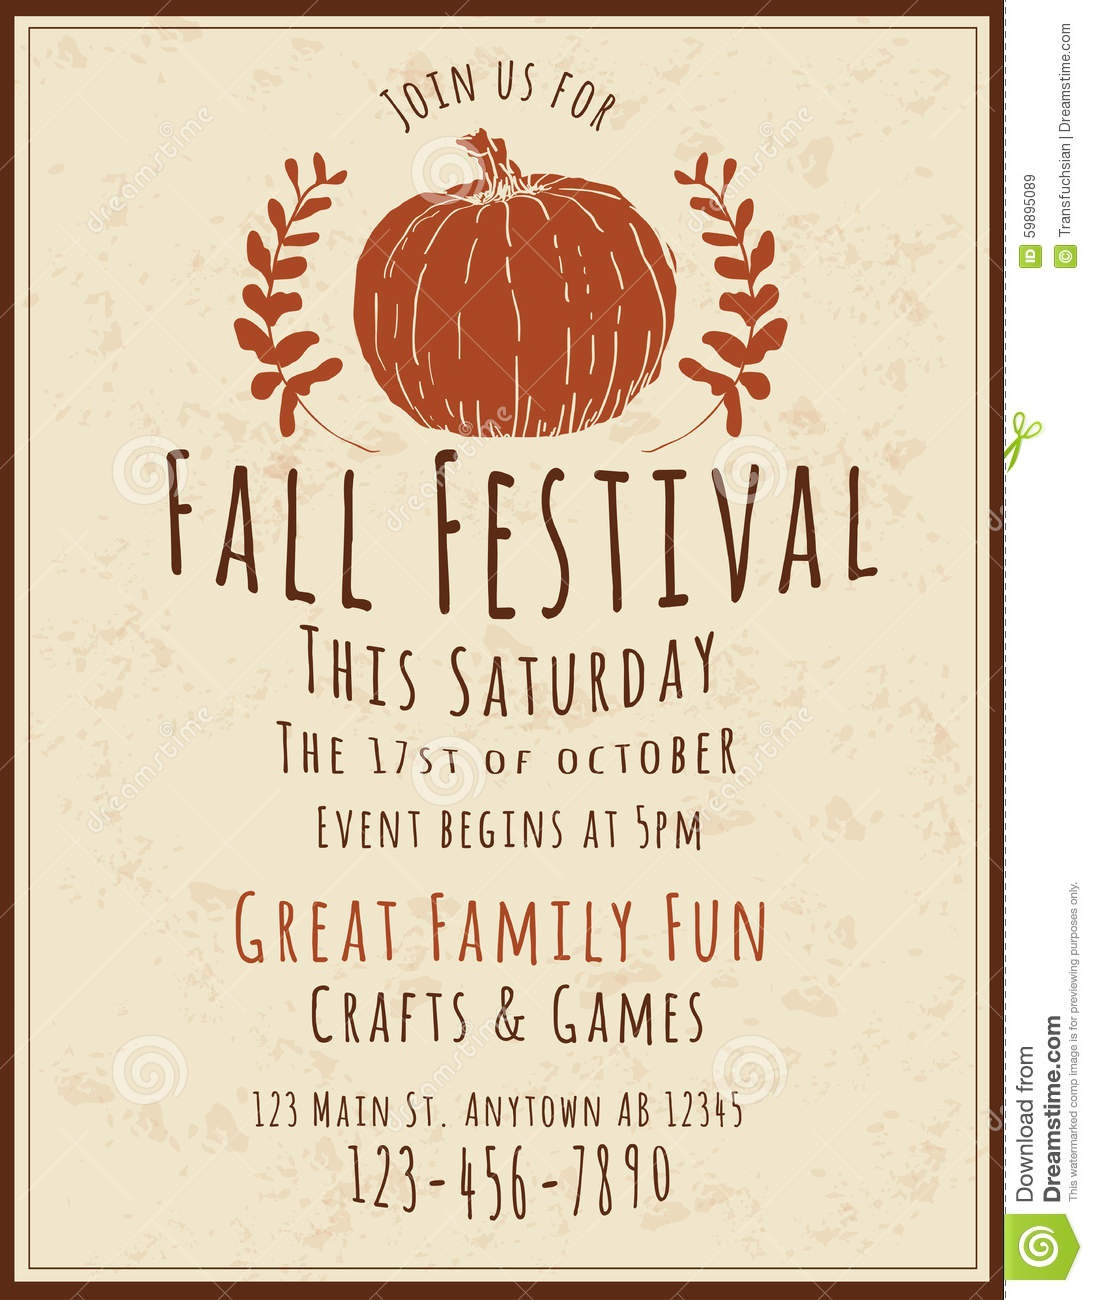 003 Fall Festival Flyers Templates Flyer Template Simple Retro Hand - Free Printable Fall Flyer Templates